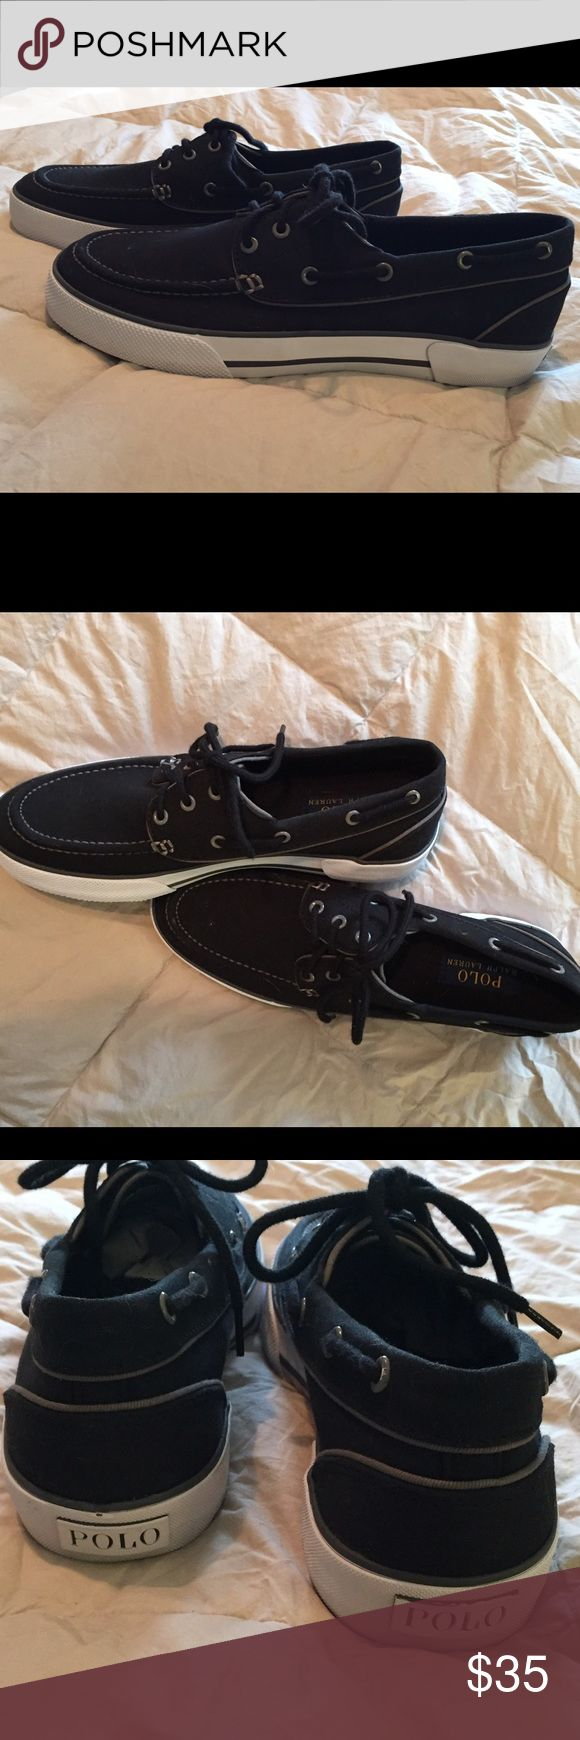 POLO by  Ralph Lauren Navy Blue Boat Shoes POLO by Ralph Lauren  Boat Shoes. Navy Blue         New w/o tags. Men's Size 8 Polo by Ralph Lauren Shoes Boat Shoes